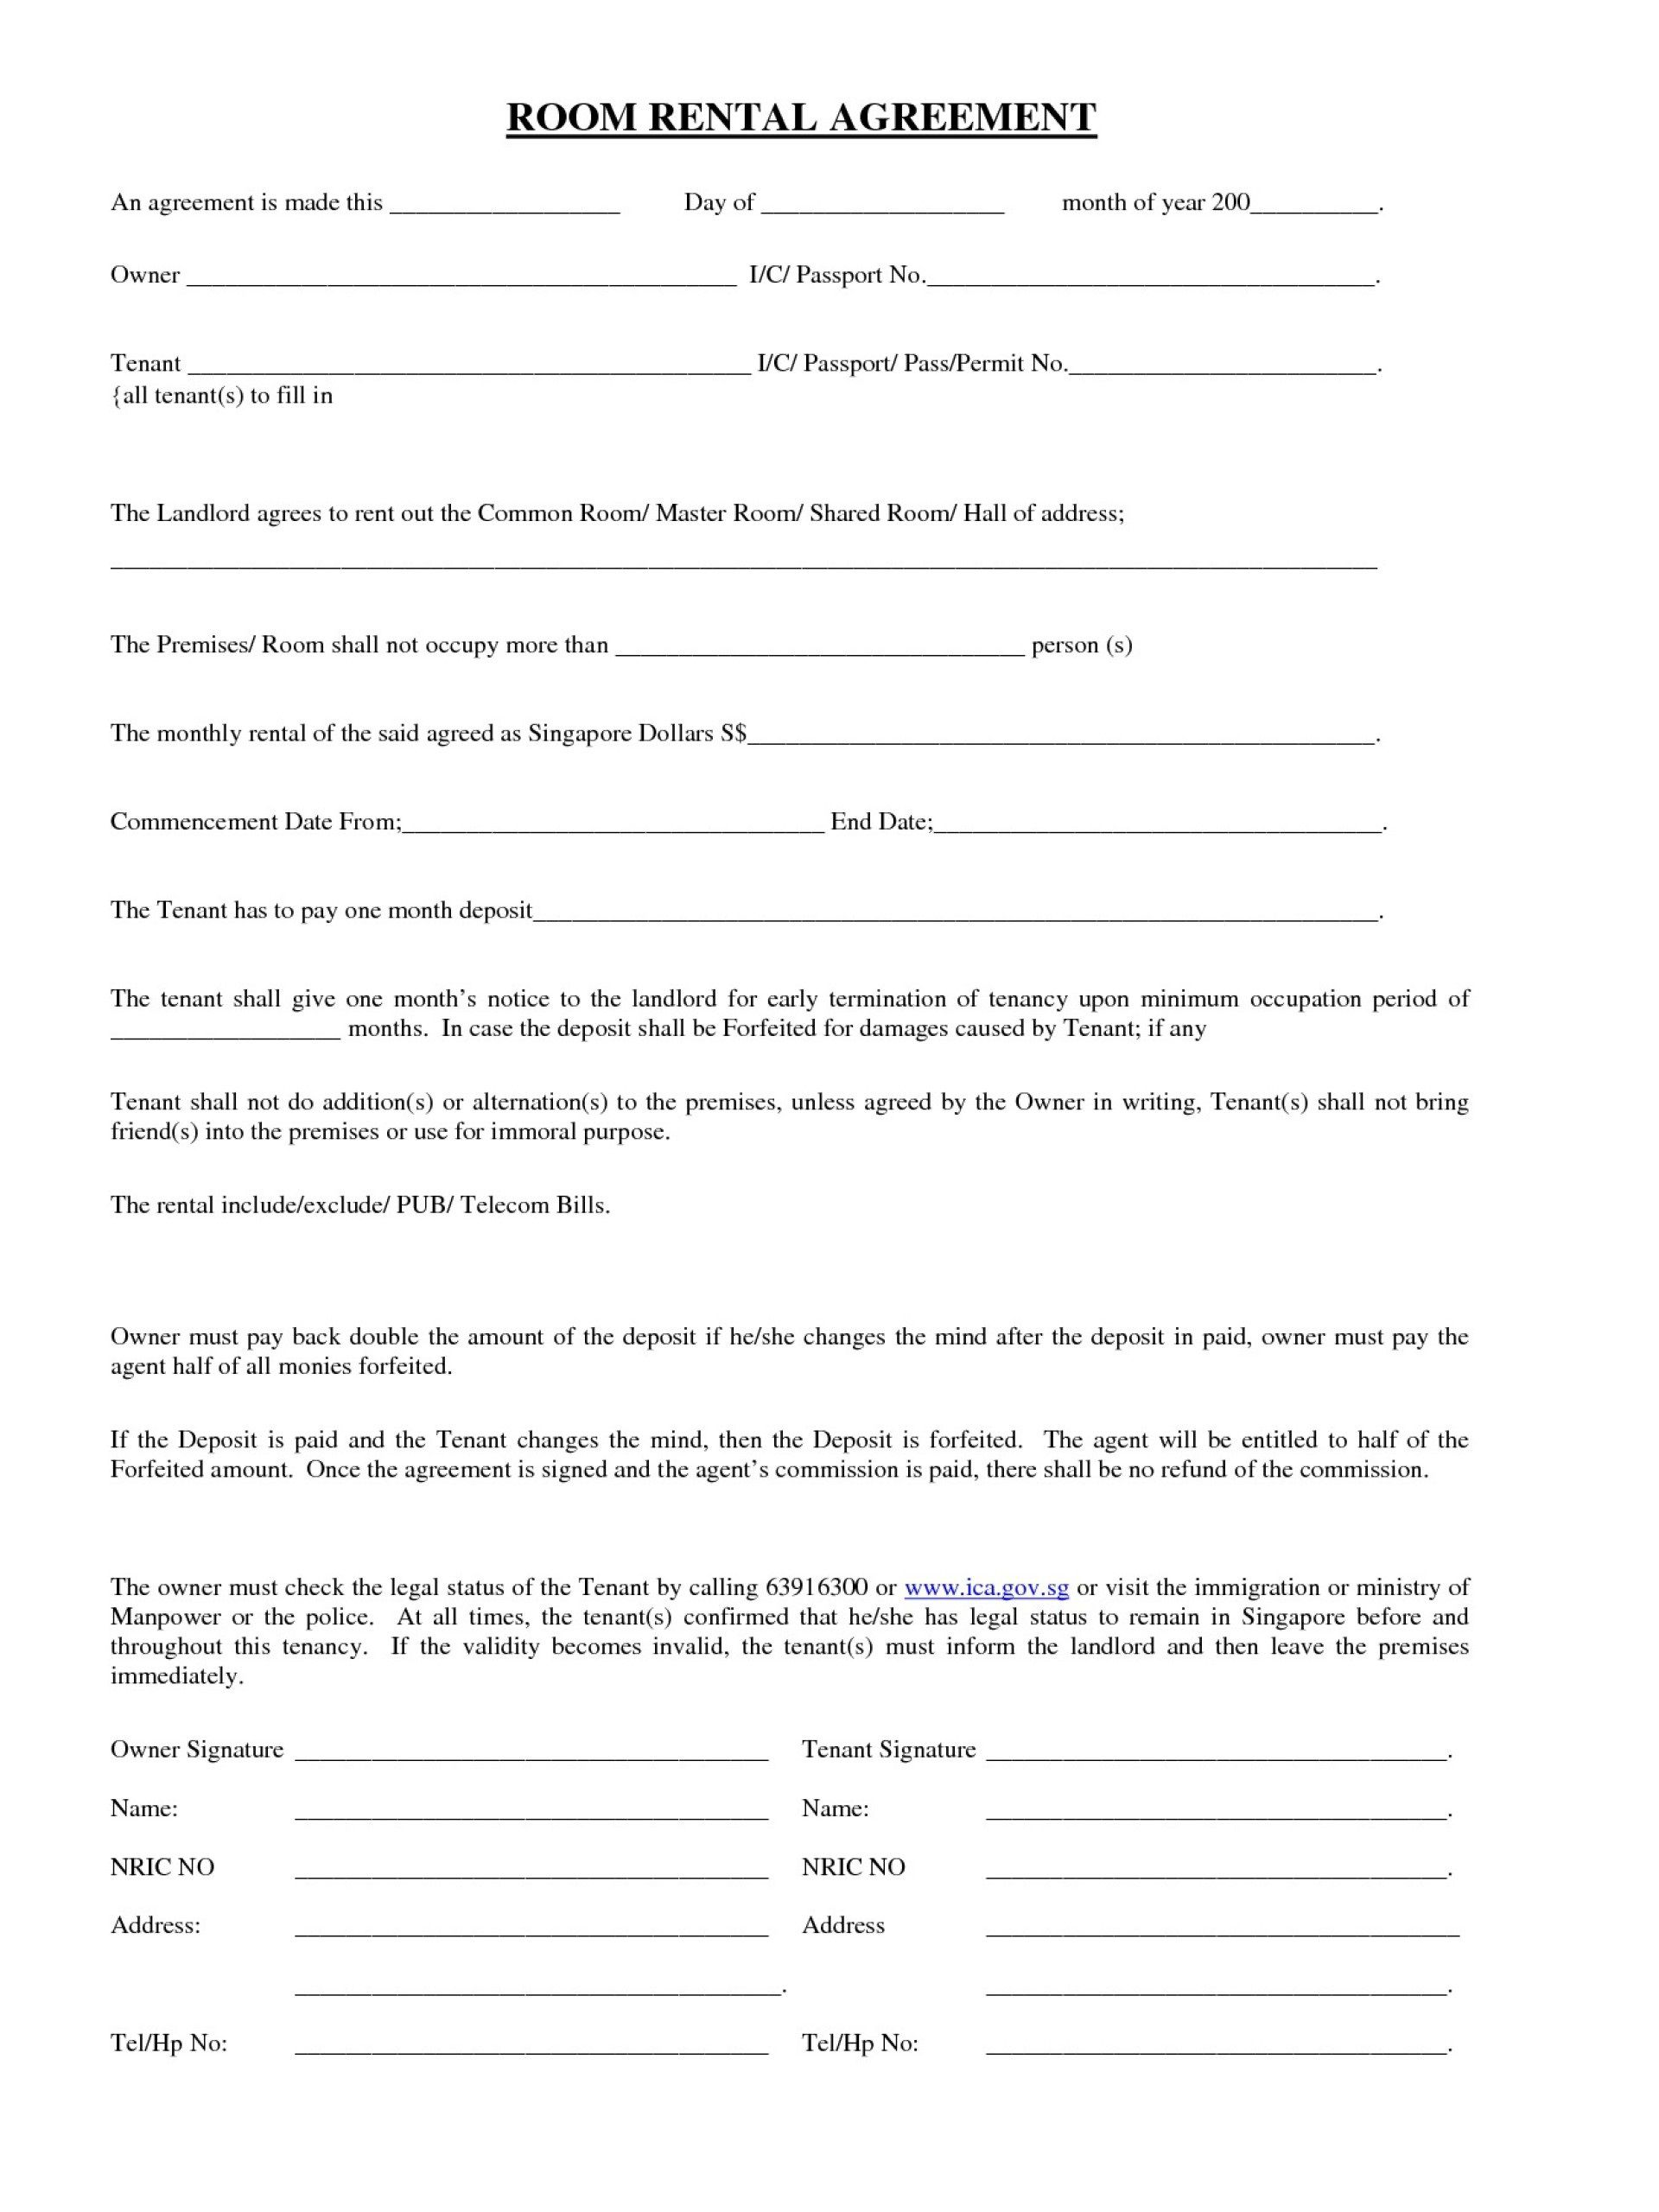 008 Excellent Room Rental Agreement Template Word Doc Malaysia Concept Full